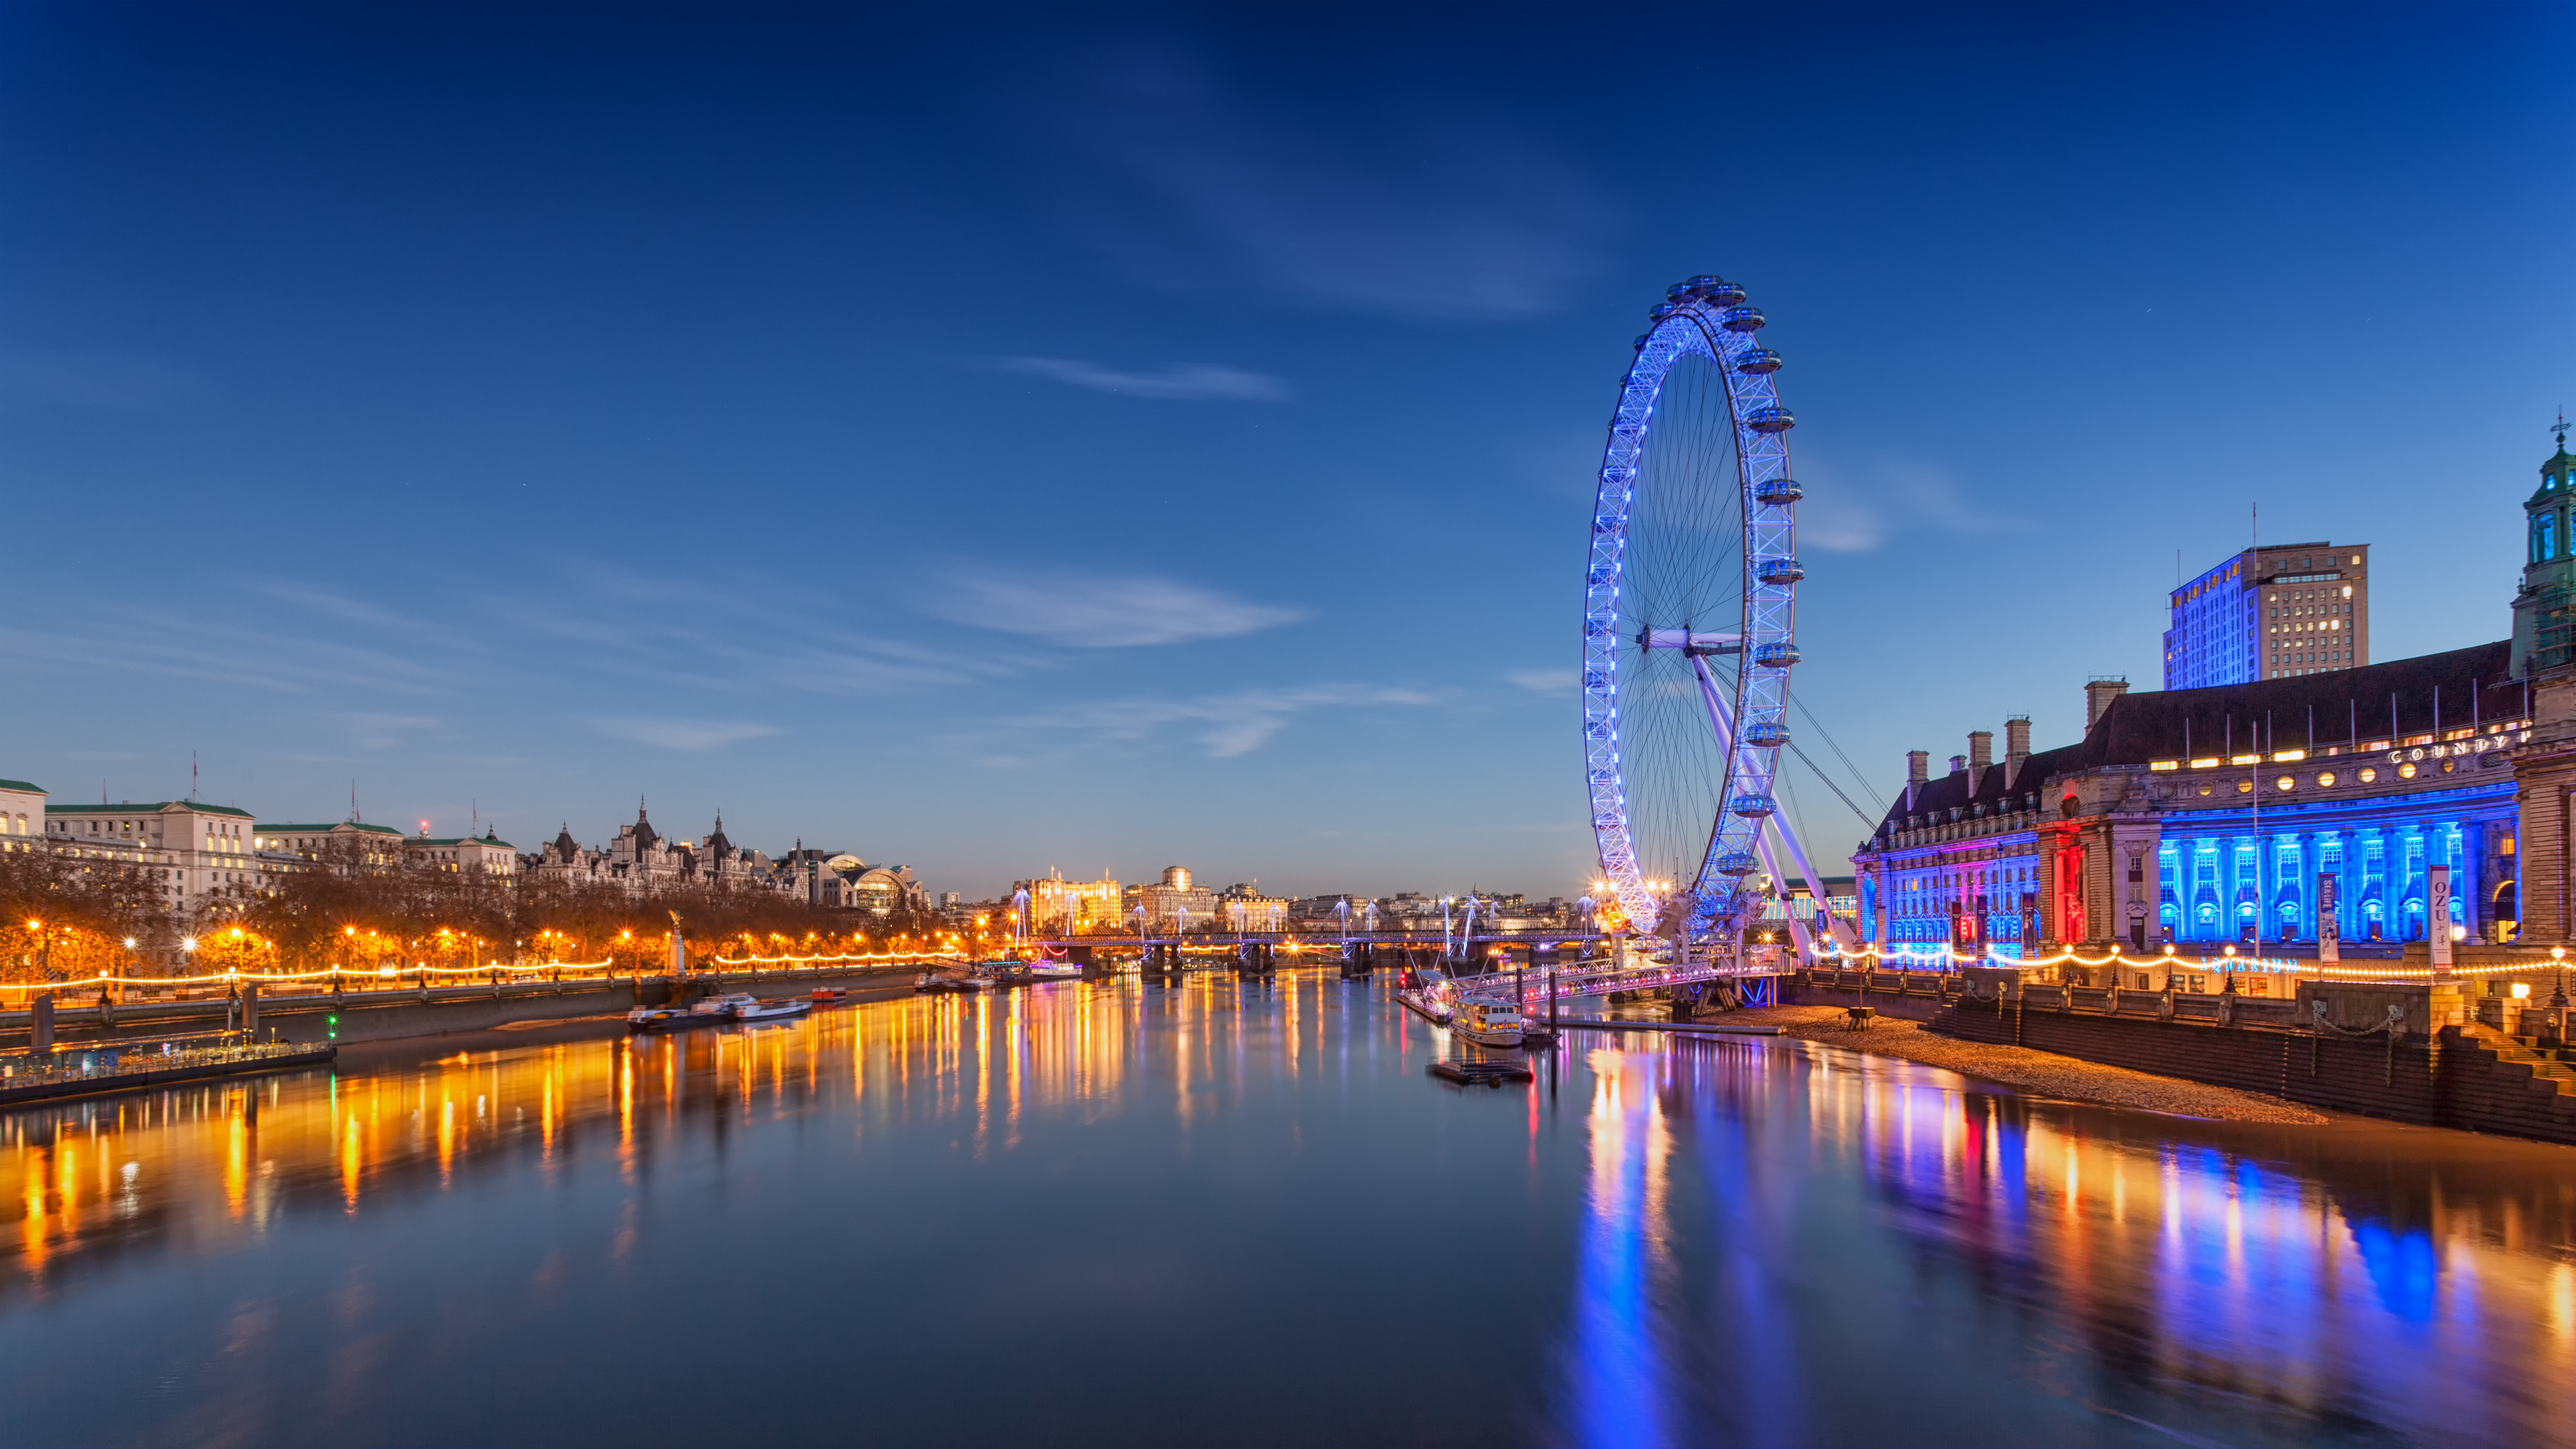 london eye twalight night ultrahd 4k wallpaper wallpaperupcom 3840x2160